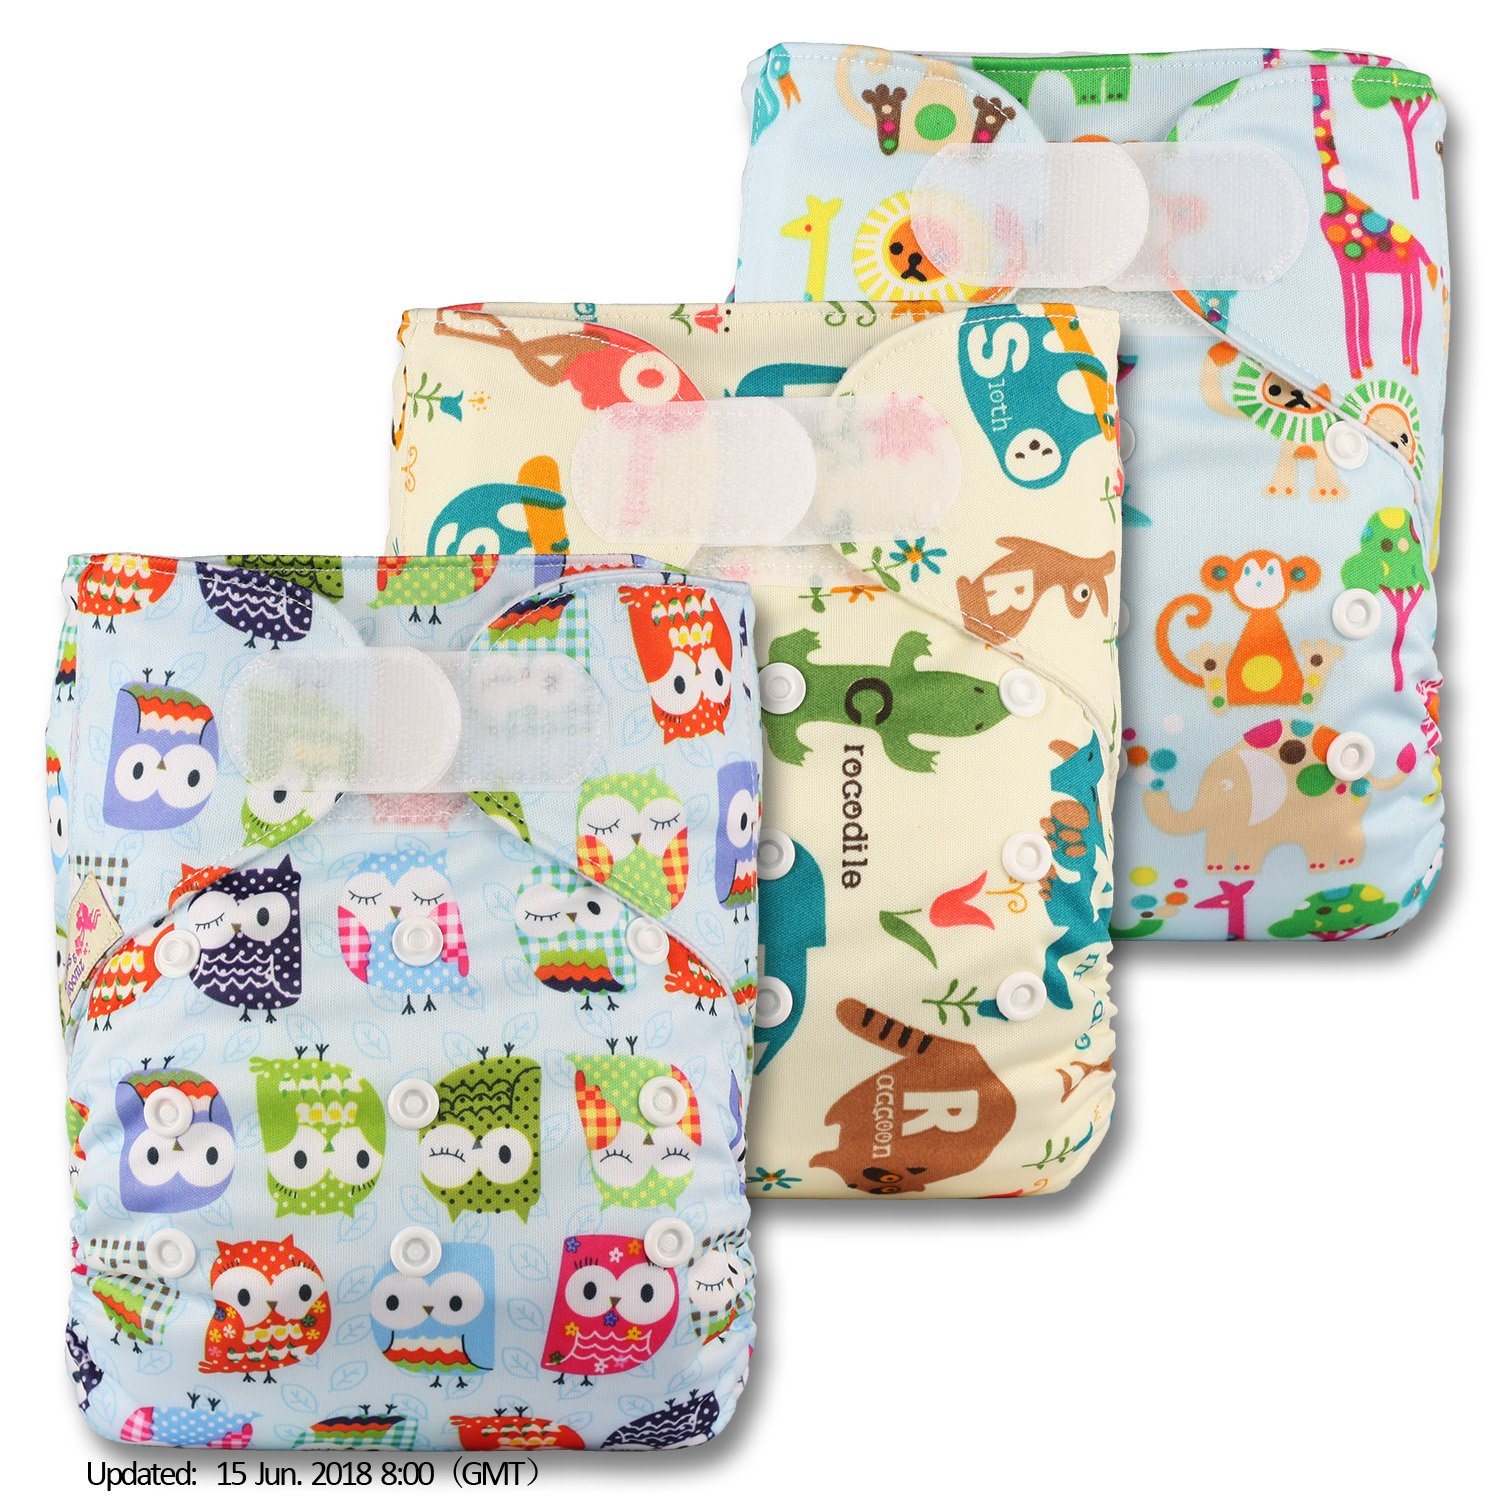 Littles & Bloomz, Reusable Pocket Cloth Nappy, Fastener: Hook-Loop, Set of 3, Patterns 309, Without Insert